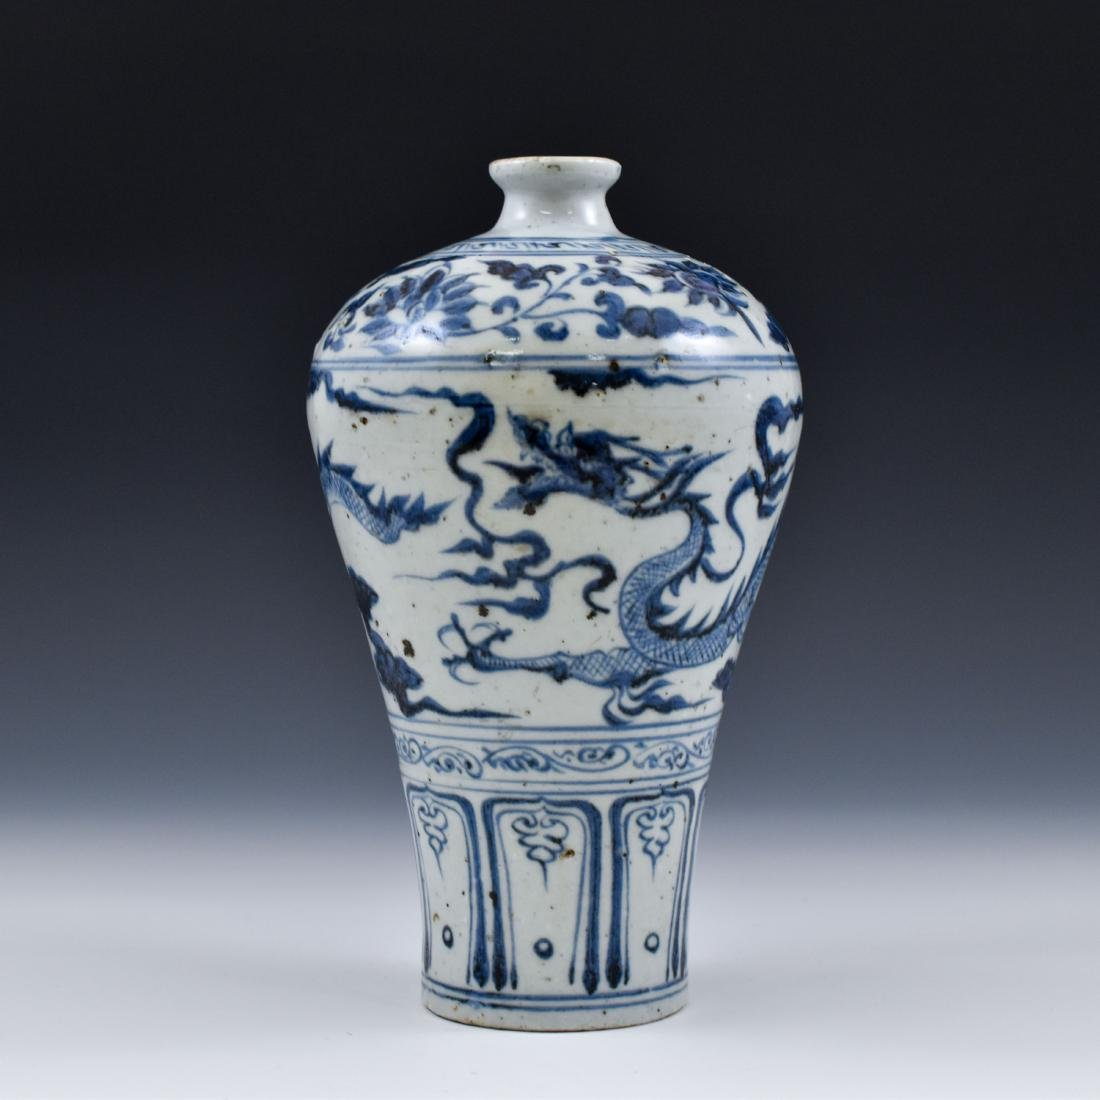 YUAN CHINESE BLUE & WHITE DRAGON MEIPING VASE